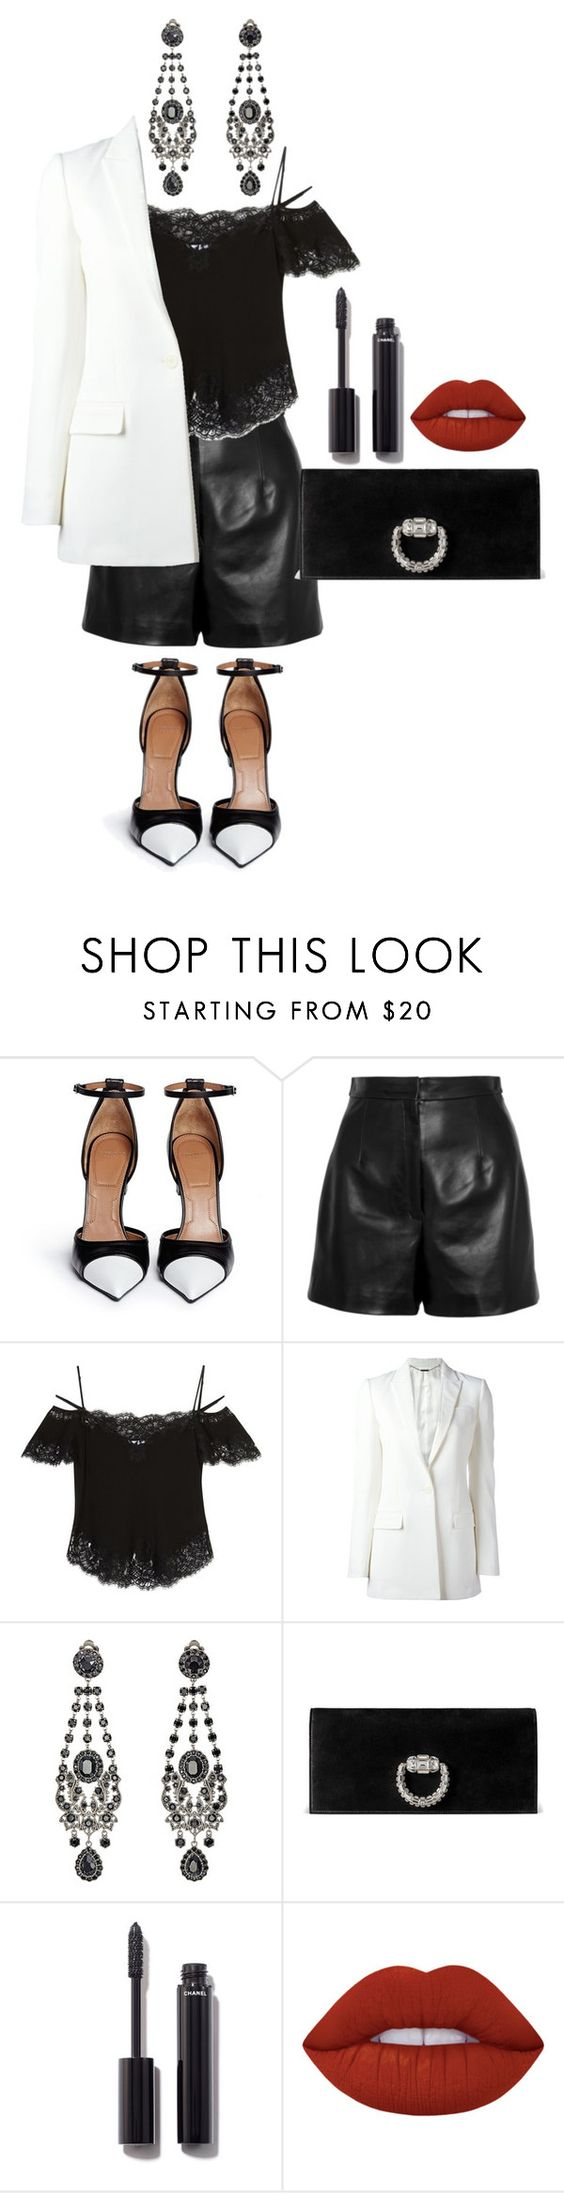 """Senza titolo #1897"" by monsteryay ❤ liked on Polyvore featuring Givenchy, Balenciaga, Gucci, Chanel and Lime Crime"